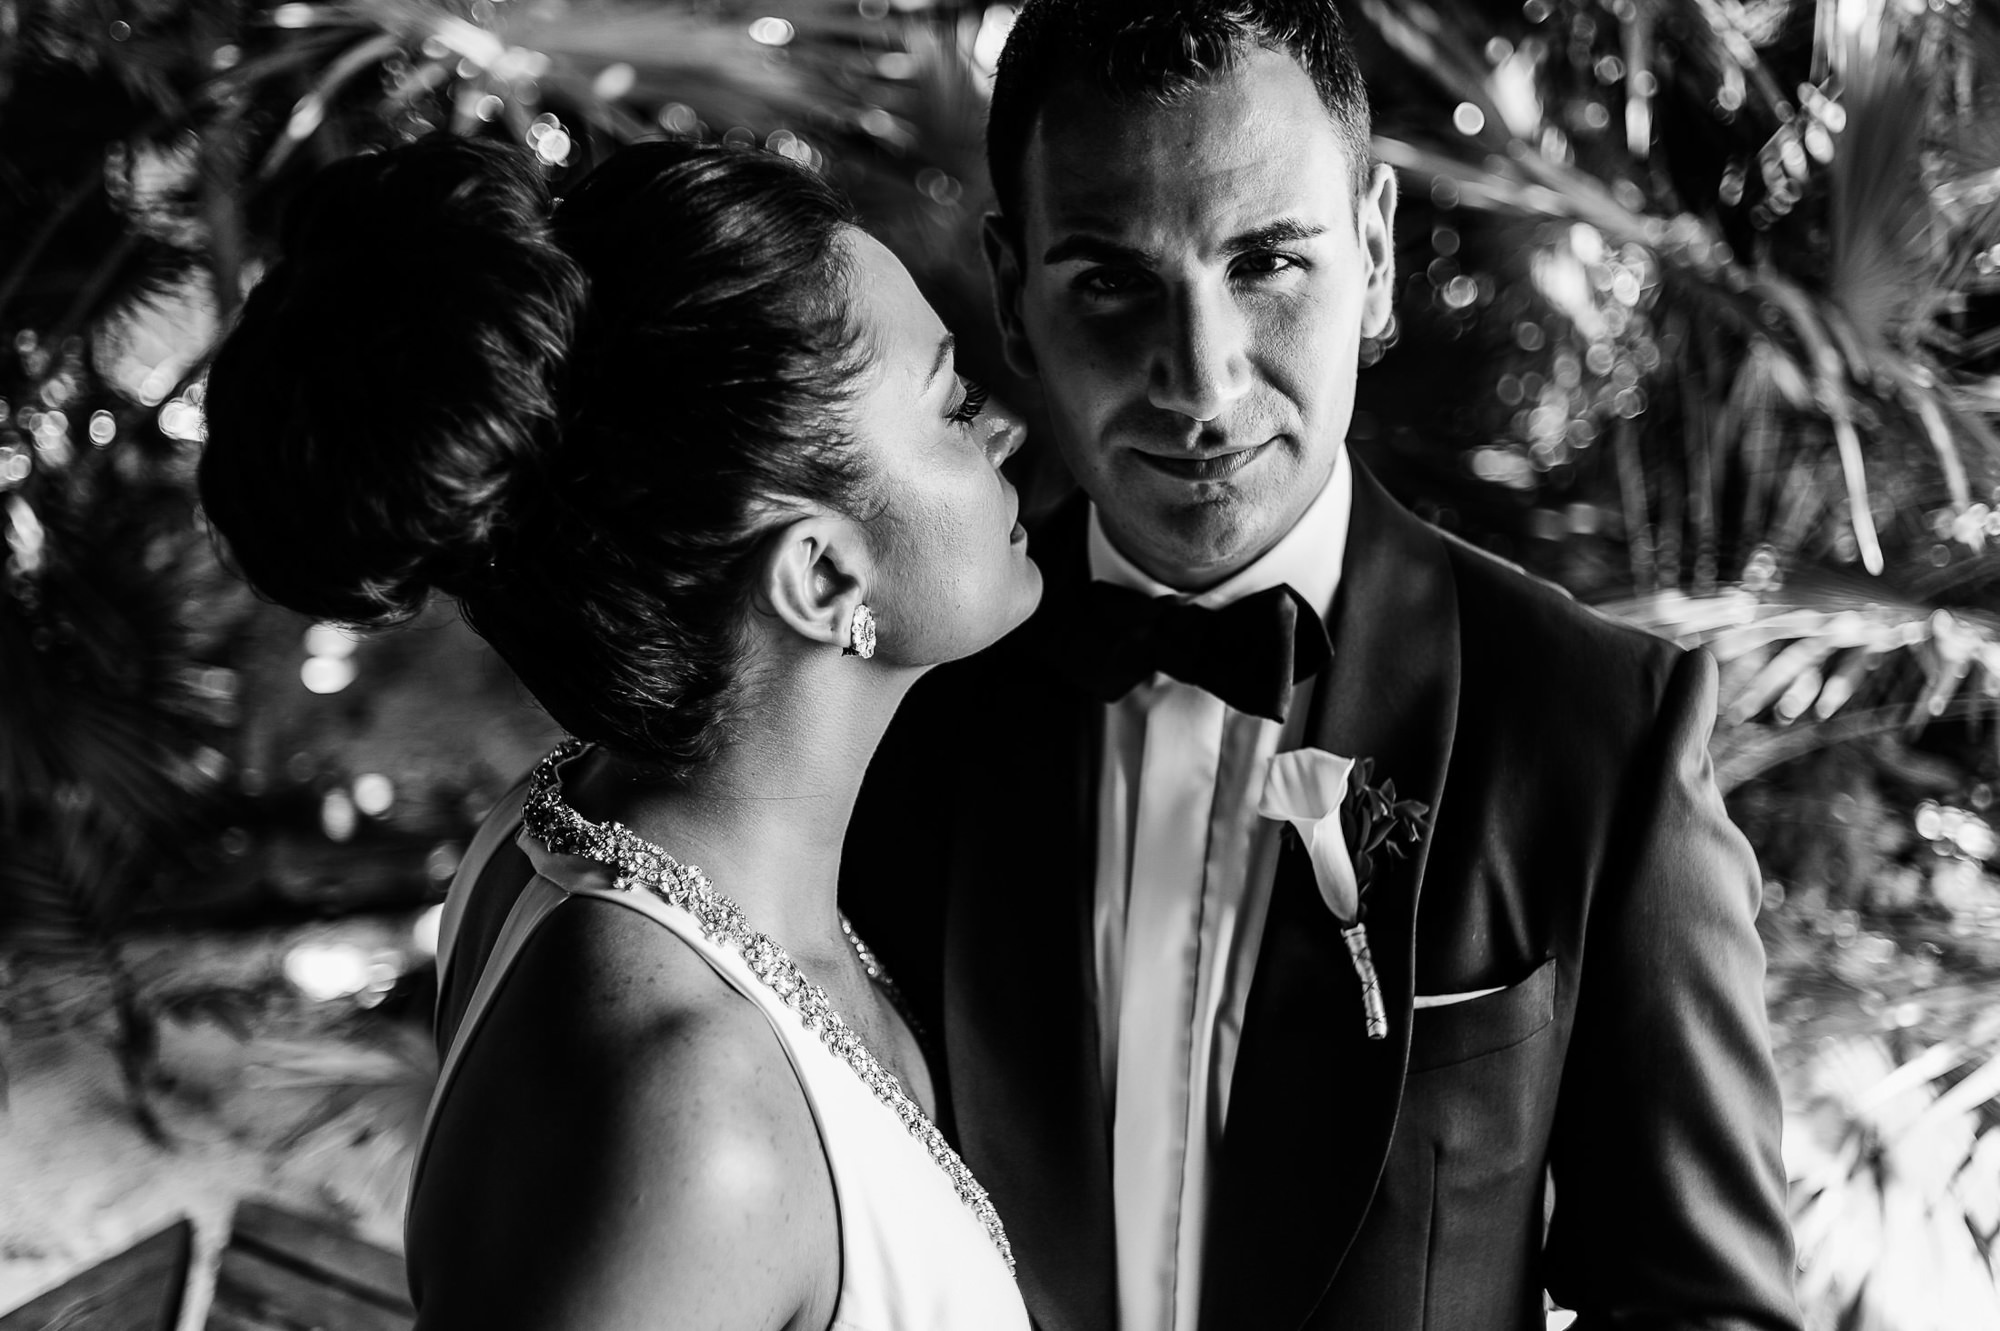 Bride and groom in gritty black and white, by Citlalli Rico